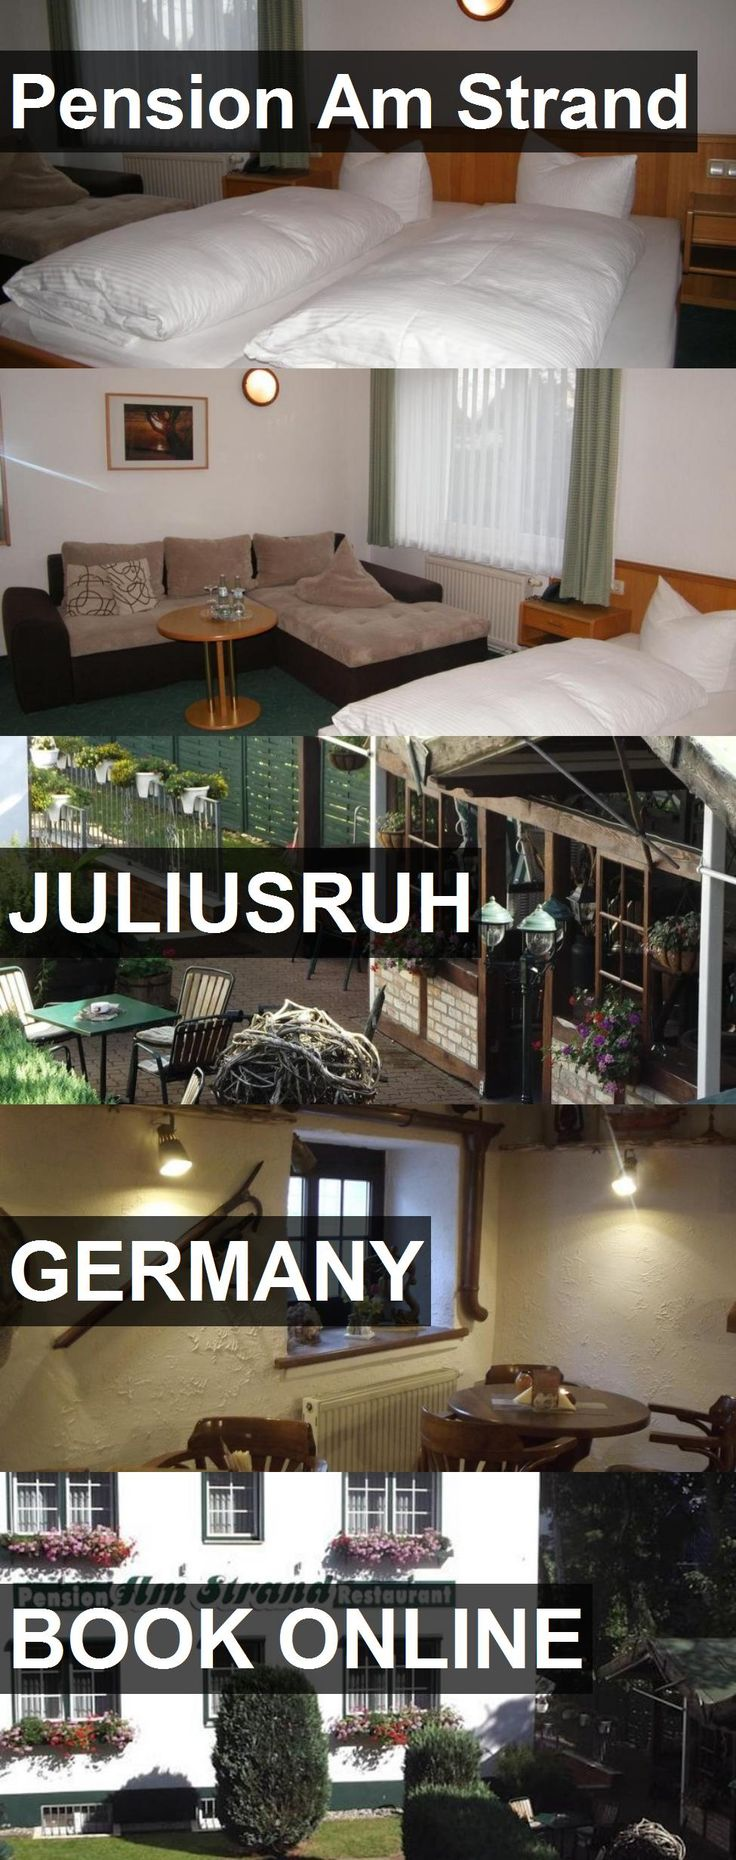 Hotel Pension Am Strand in Juliusruh, Germany. For more information, photos, reviews and best prices please follow the link. #Germany #Juliusruh #travel #vacation #hotel